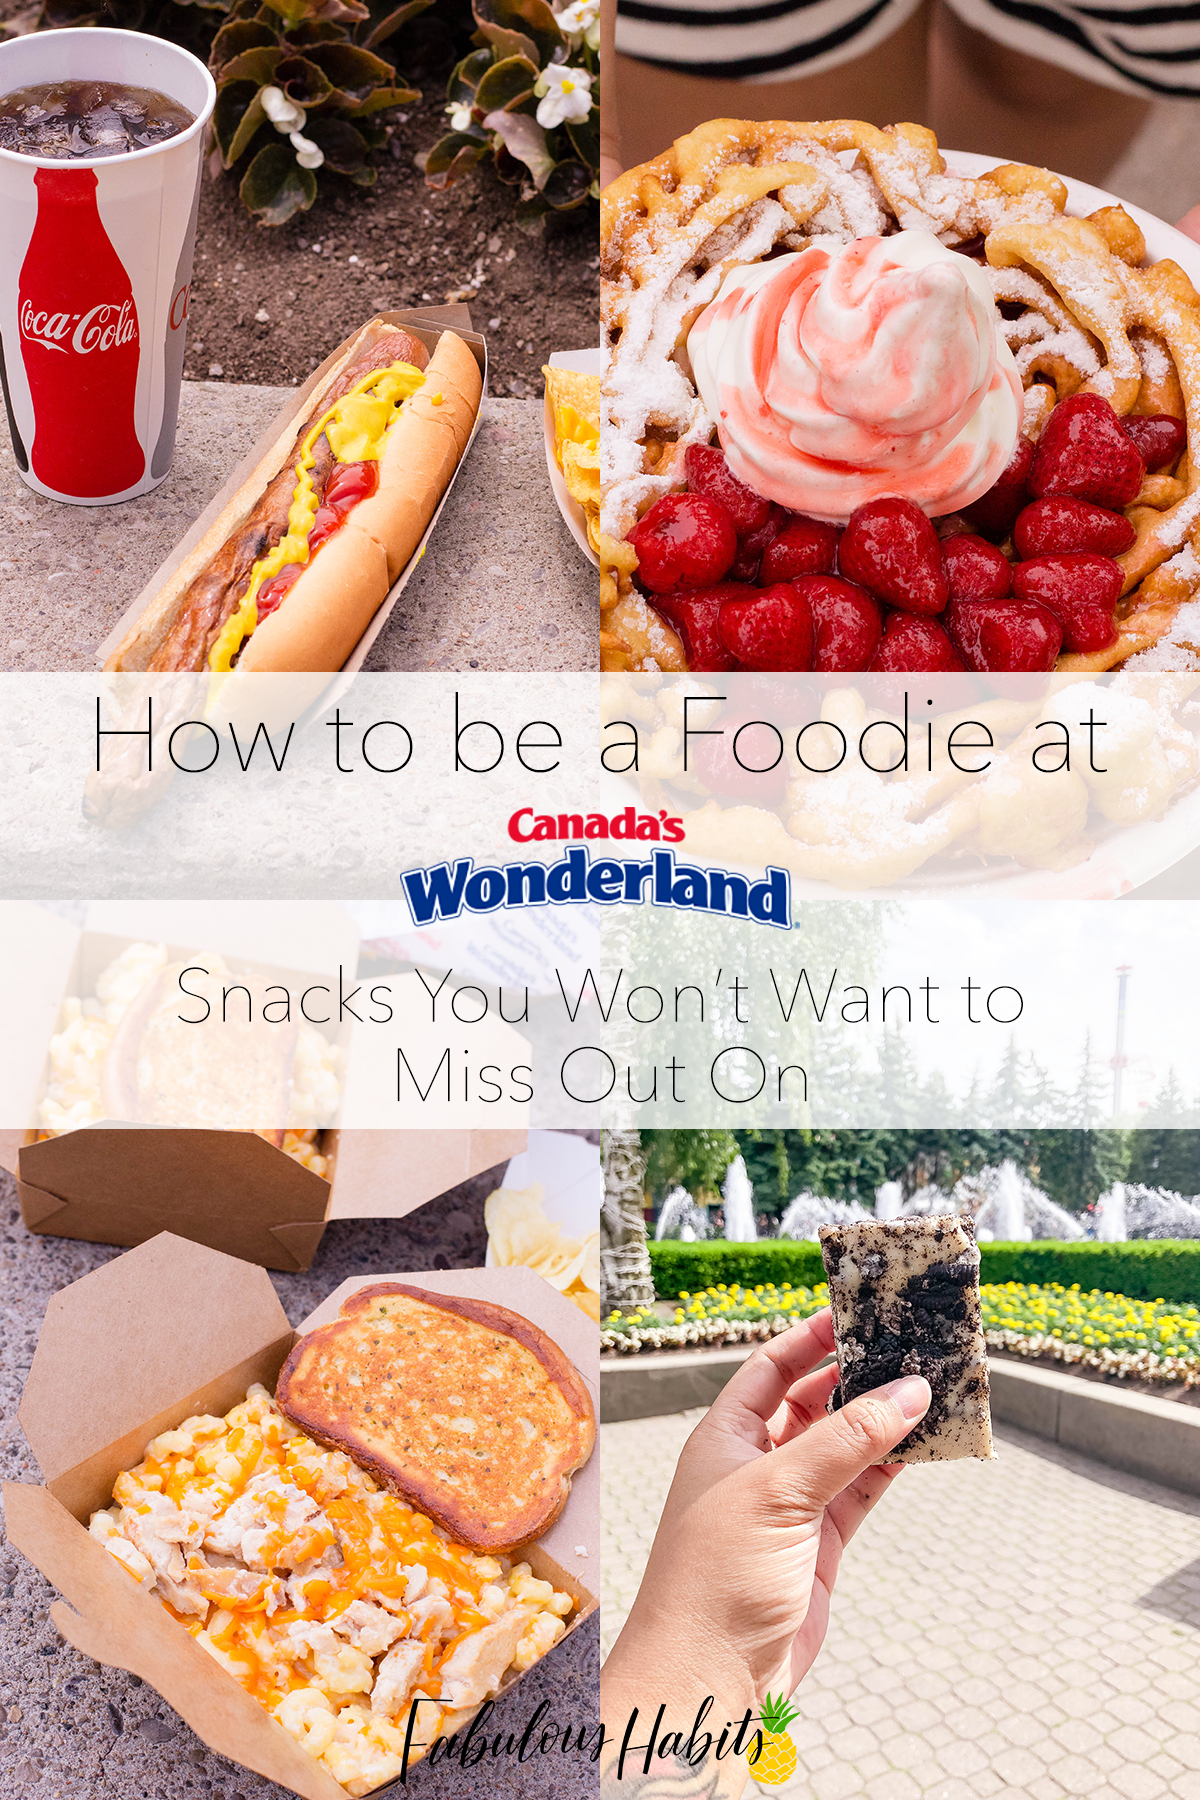 Canada's Wonderland Snacks that are worthy for your foodie taste buds (trust me, you'll want to bring your appetite!